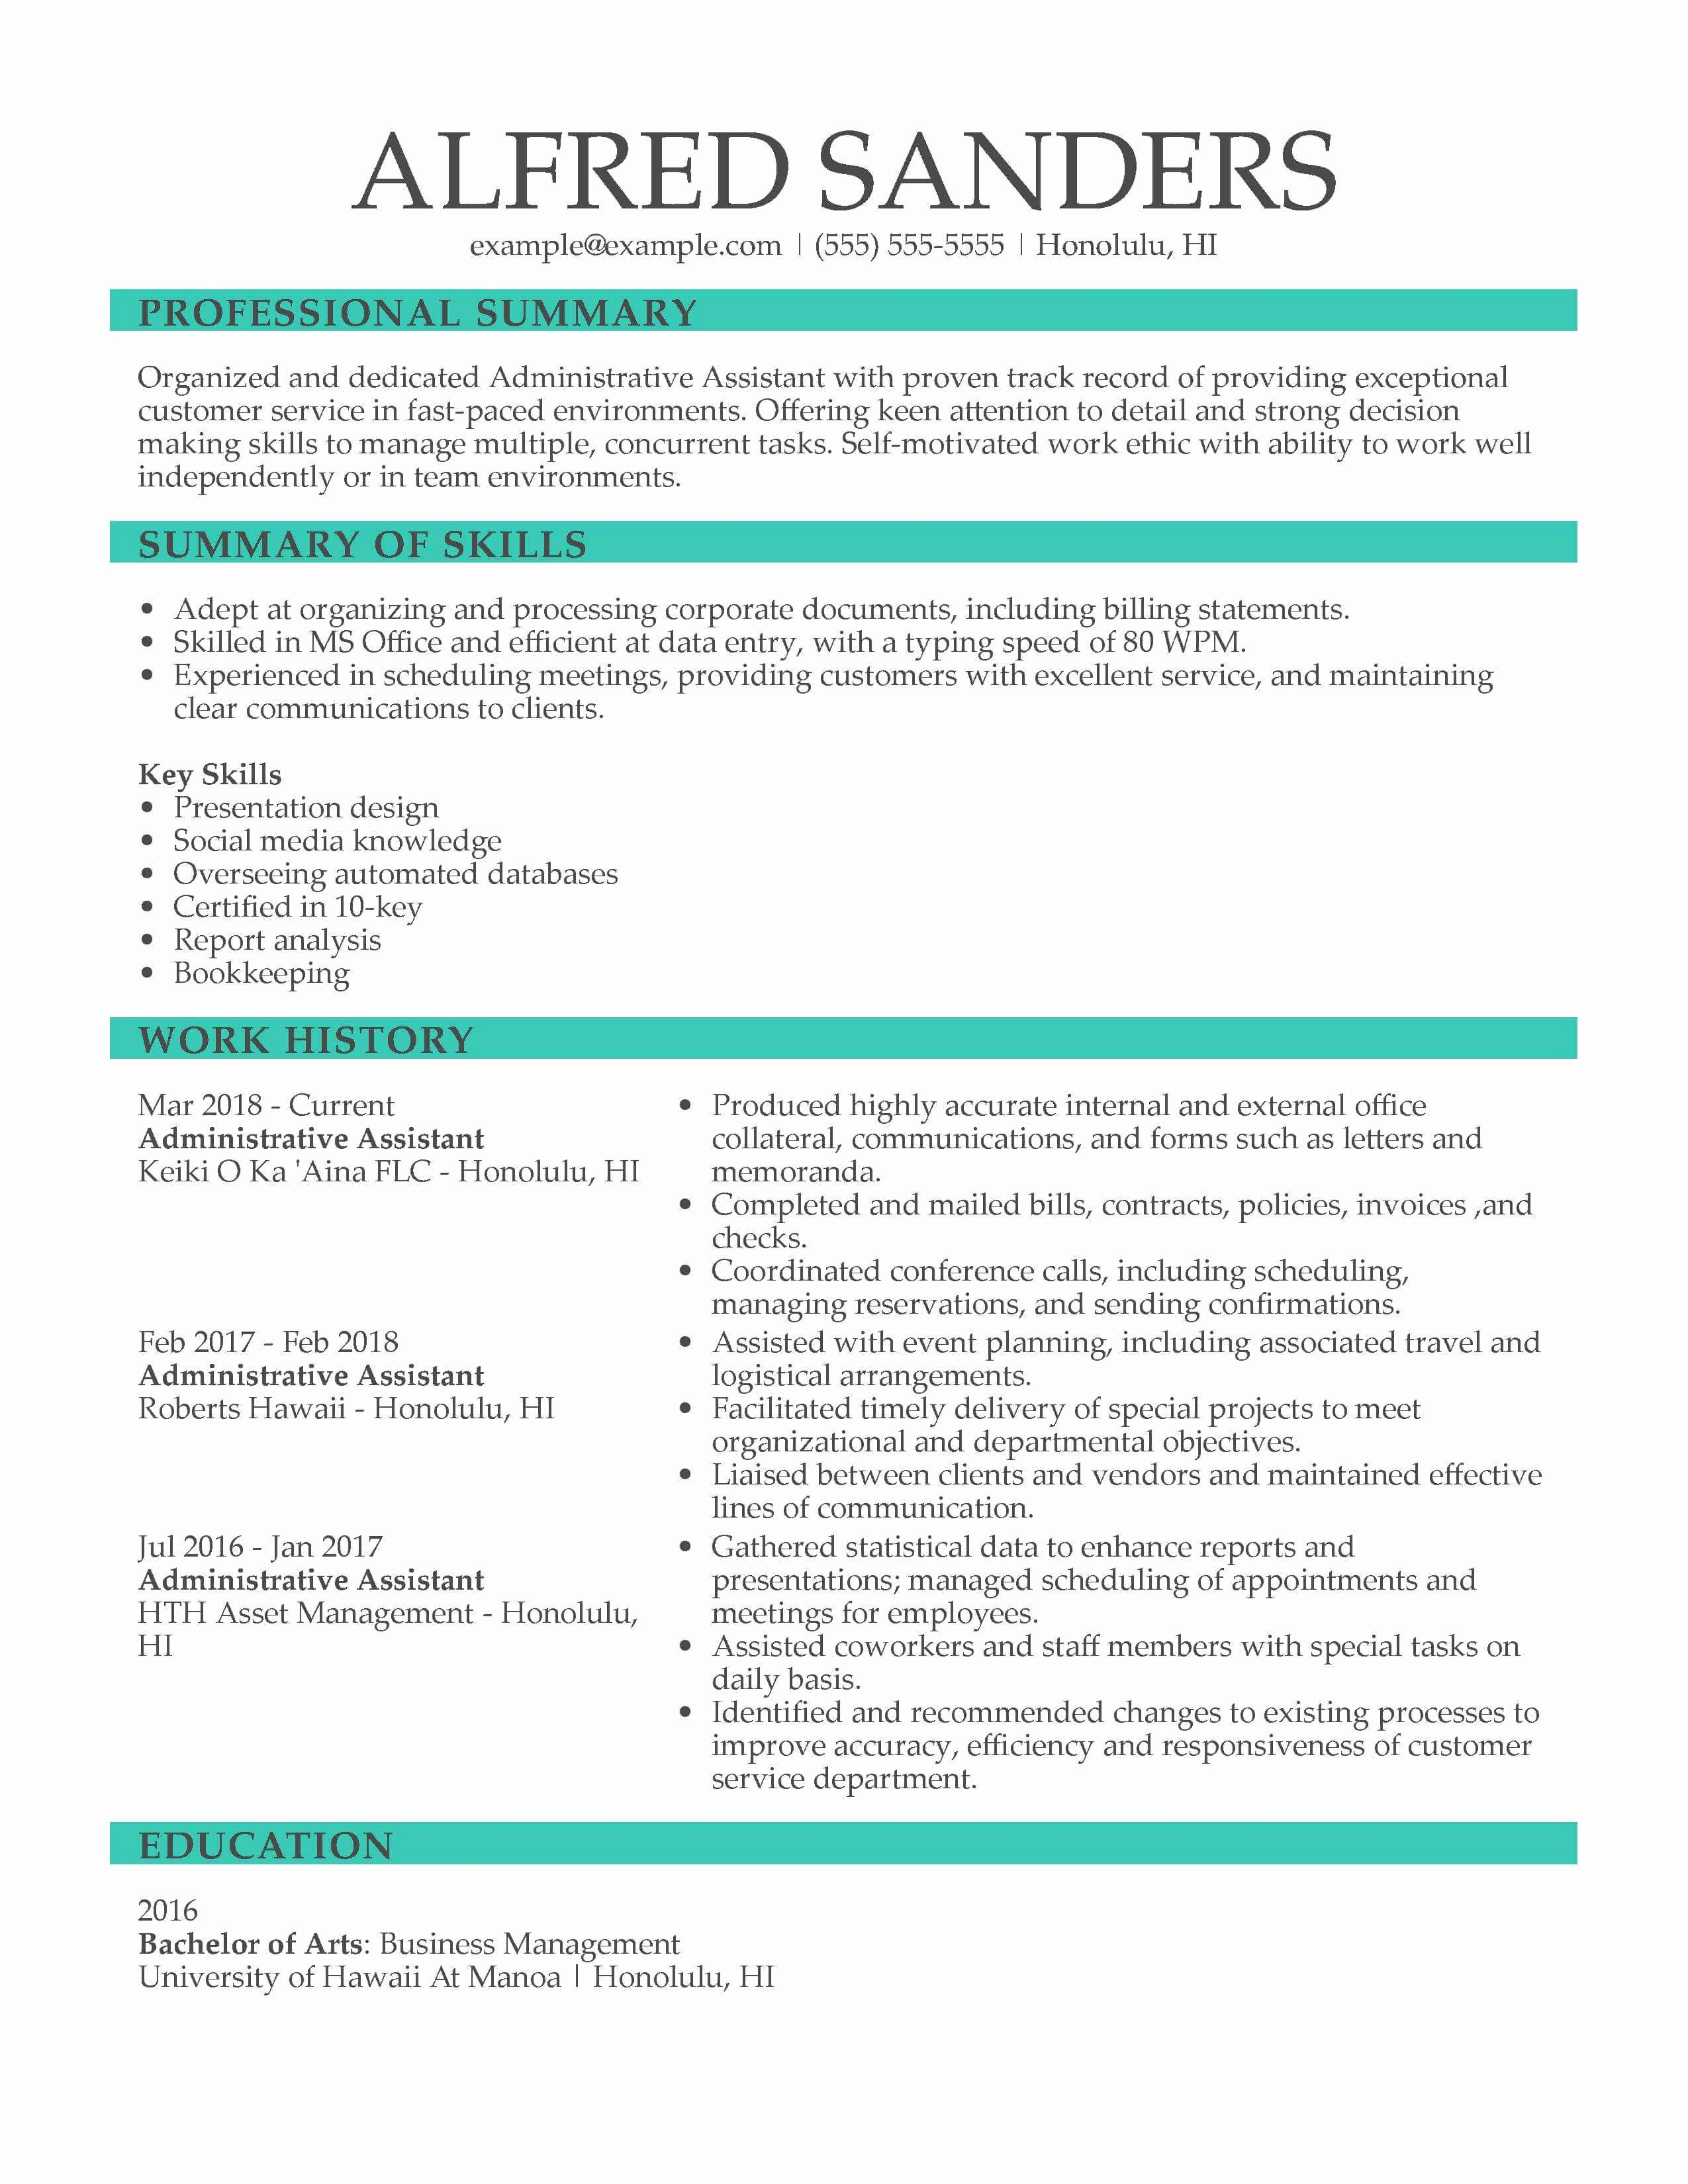 Job Description Template Google Docs New Executive assistant Resume Examples Created by Pros